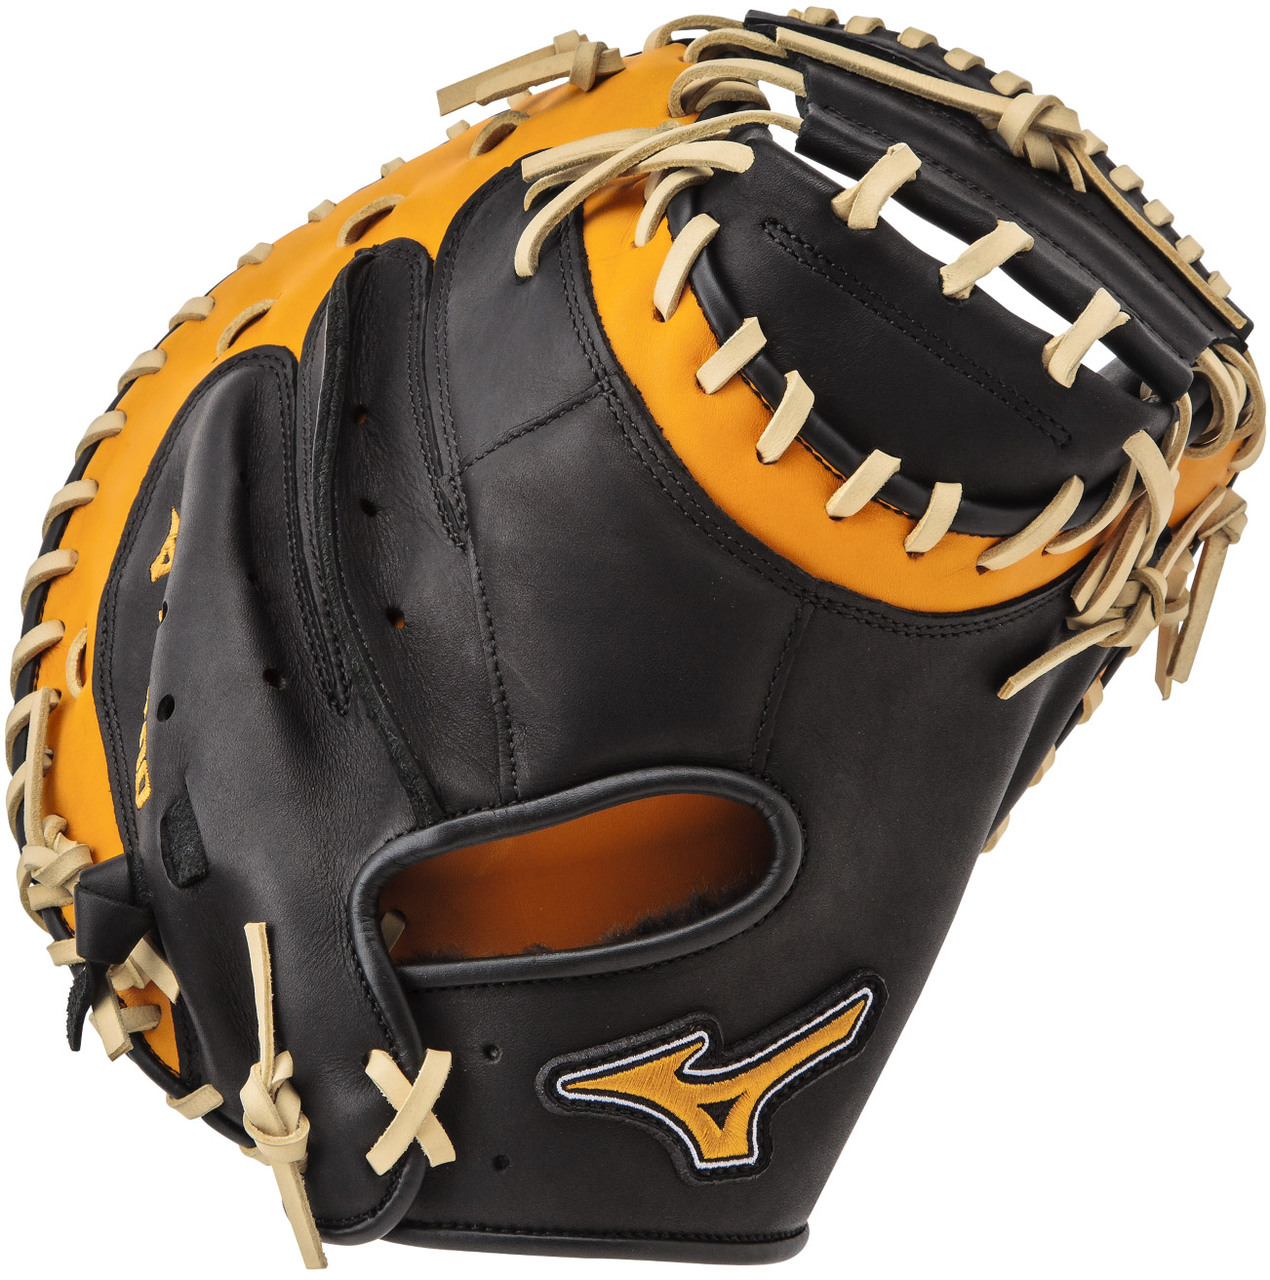 mizuno-mvp-prime-se-catchers-mitt-black-gold-right-hand-throw GXC50PSE4-BLACK-GOLD-RightHandThrow Mizuno 041969557839 34.00 Inch Pattern Bio Soft Leather - Pro-Style Smooth Leather That